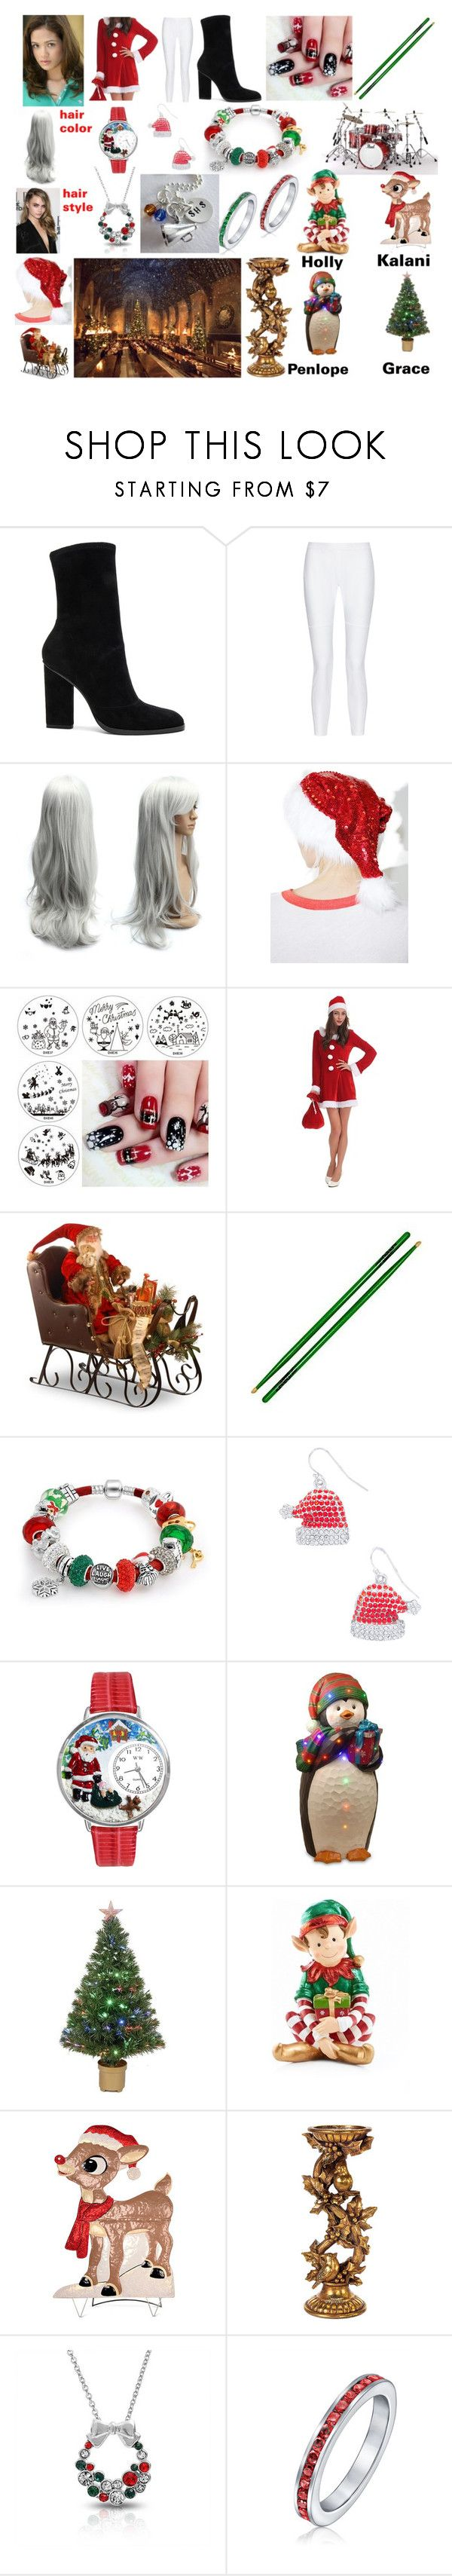 """Vivian Martin band christmas outfit 1st year"" by natilepotter3769 ❤ liked on Polyvore featuring Nicole, Alexander Wang, 10 Crosby Derek Lam, Roma, National Tree Company, Bling Jewelry, Carole, Whimsical Watches, Merske and Improvements"